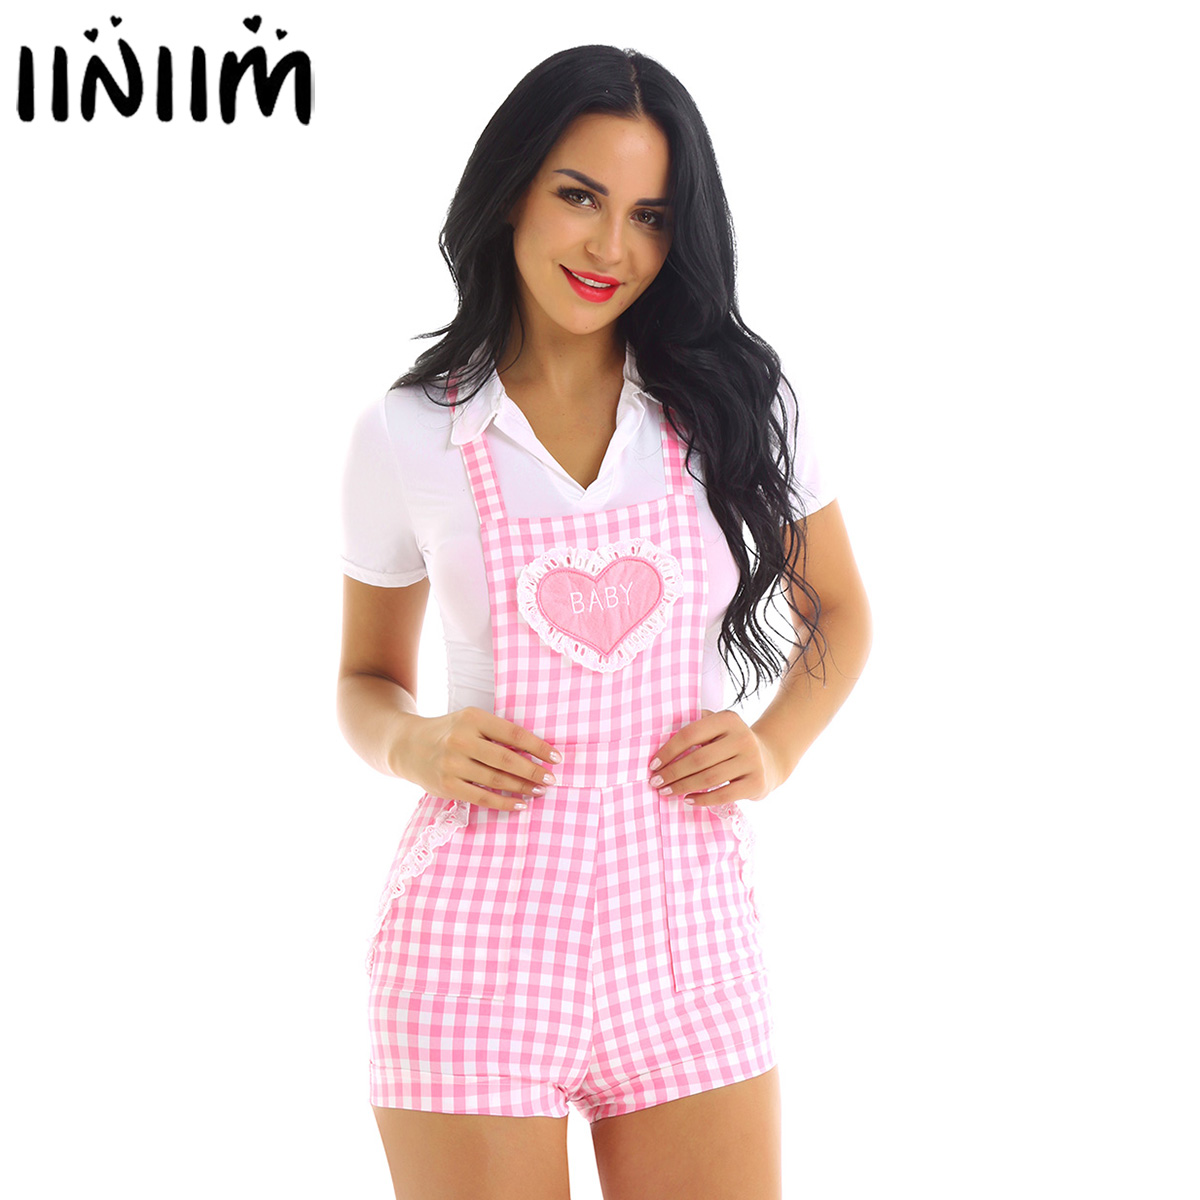 Femme Womens Cute School Clothing Baby Patch Adjustable Straps Criss-cross Back Gingham Print Babydoll Short Overalls Shortalls